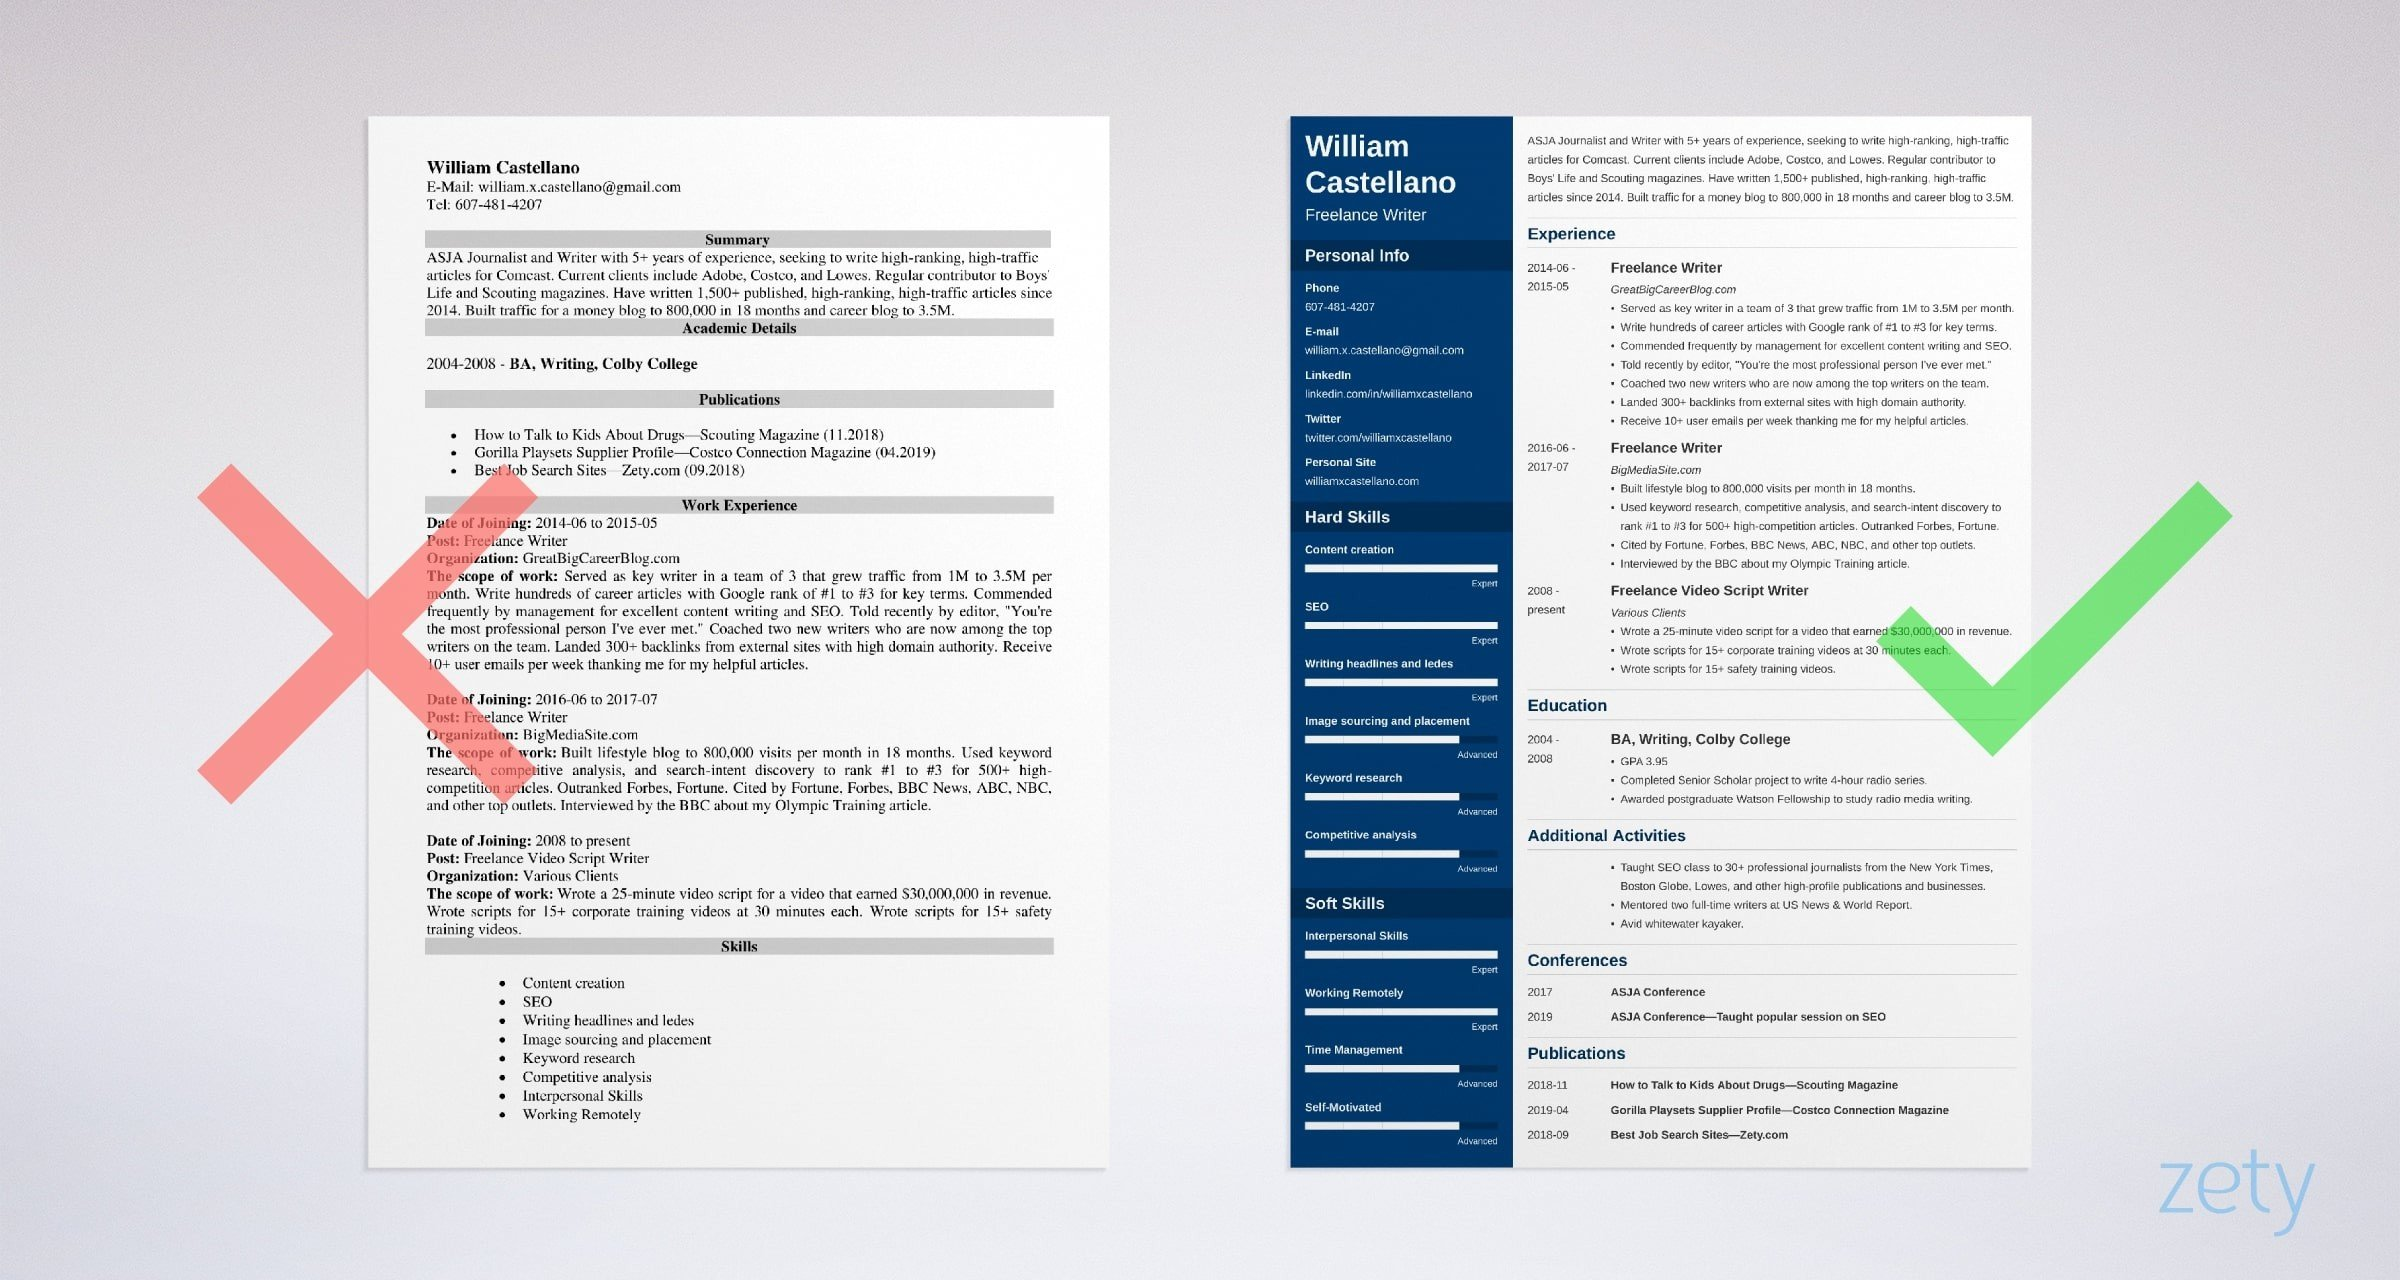 freelance work on resume freelancer examples medical technologist template fast and easy Resume Freelance Work On Resume